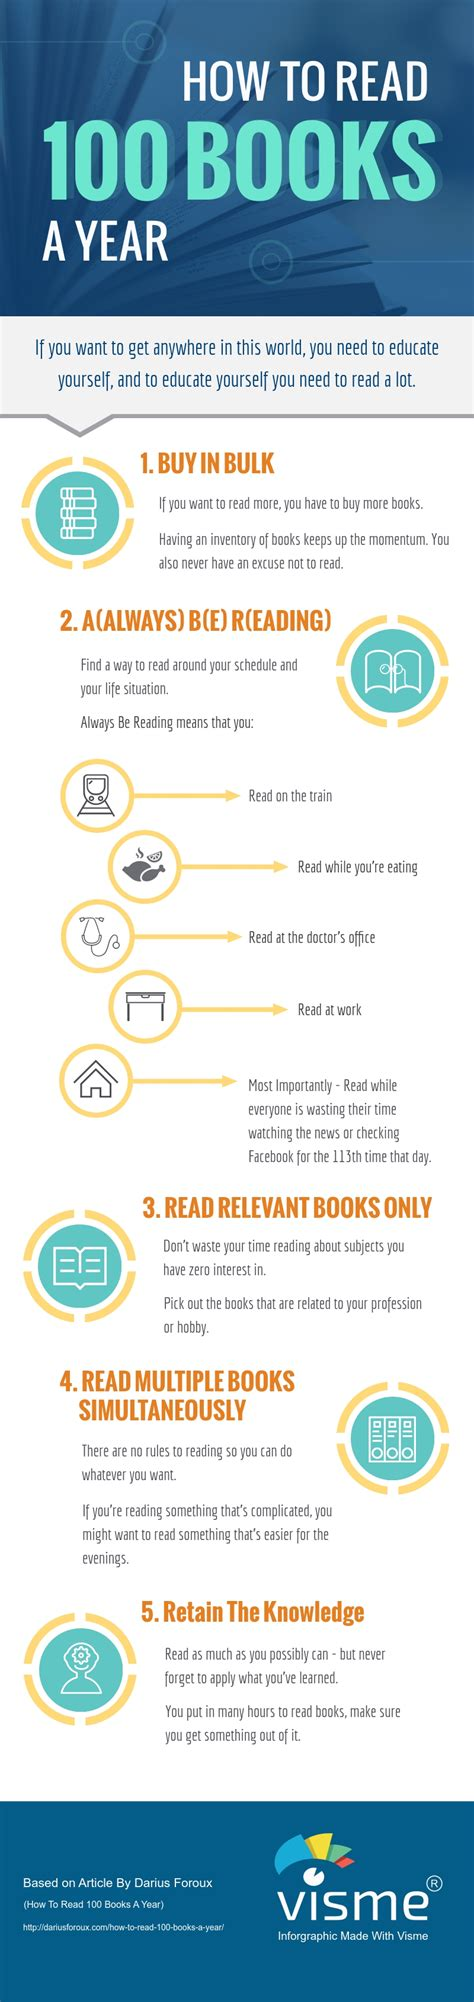 How To Read 100 Books A Year (infographic)  Darius Foroux. Phd Online Universities Wren Insurance Agency. How Much Does Pharmacy Tech Make. Houston Light Companies Bs Project Management. Roofing Shingles How To Install. What Are The Side Effects Of Atorvastatin. Mobile Payment Processing Reviews. Safeco Commercial Insurance Dodge Duluth Mn. Painting Contractors Nj Transporter 3 Audi A8